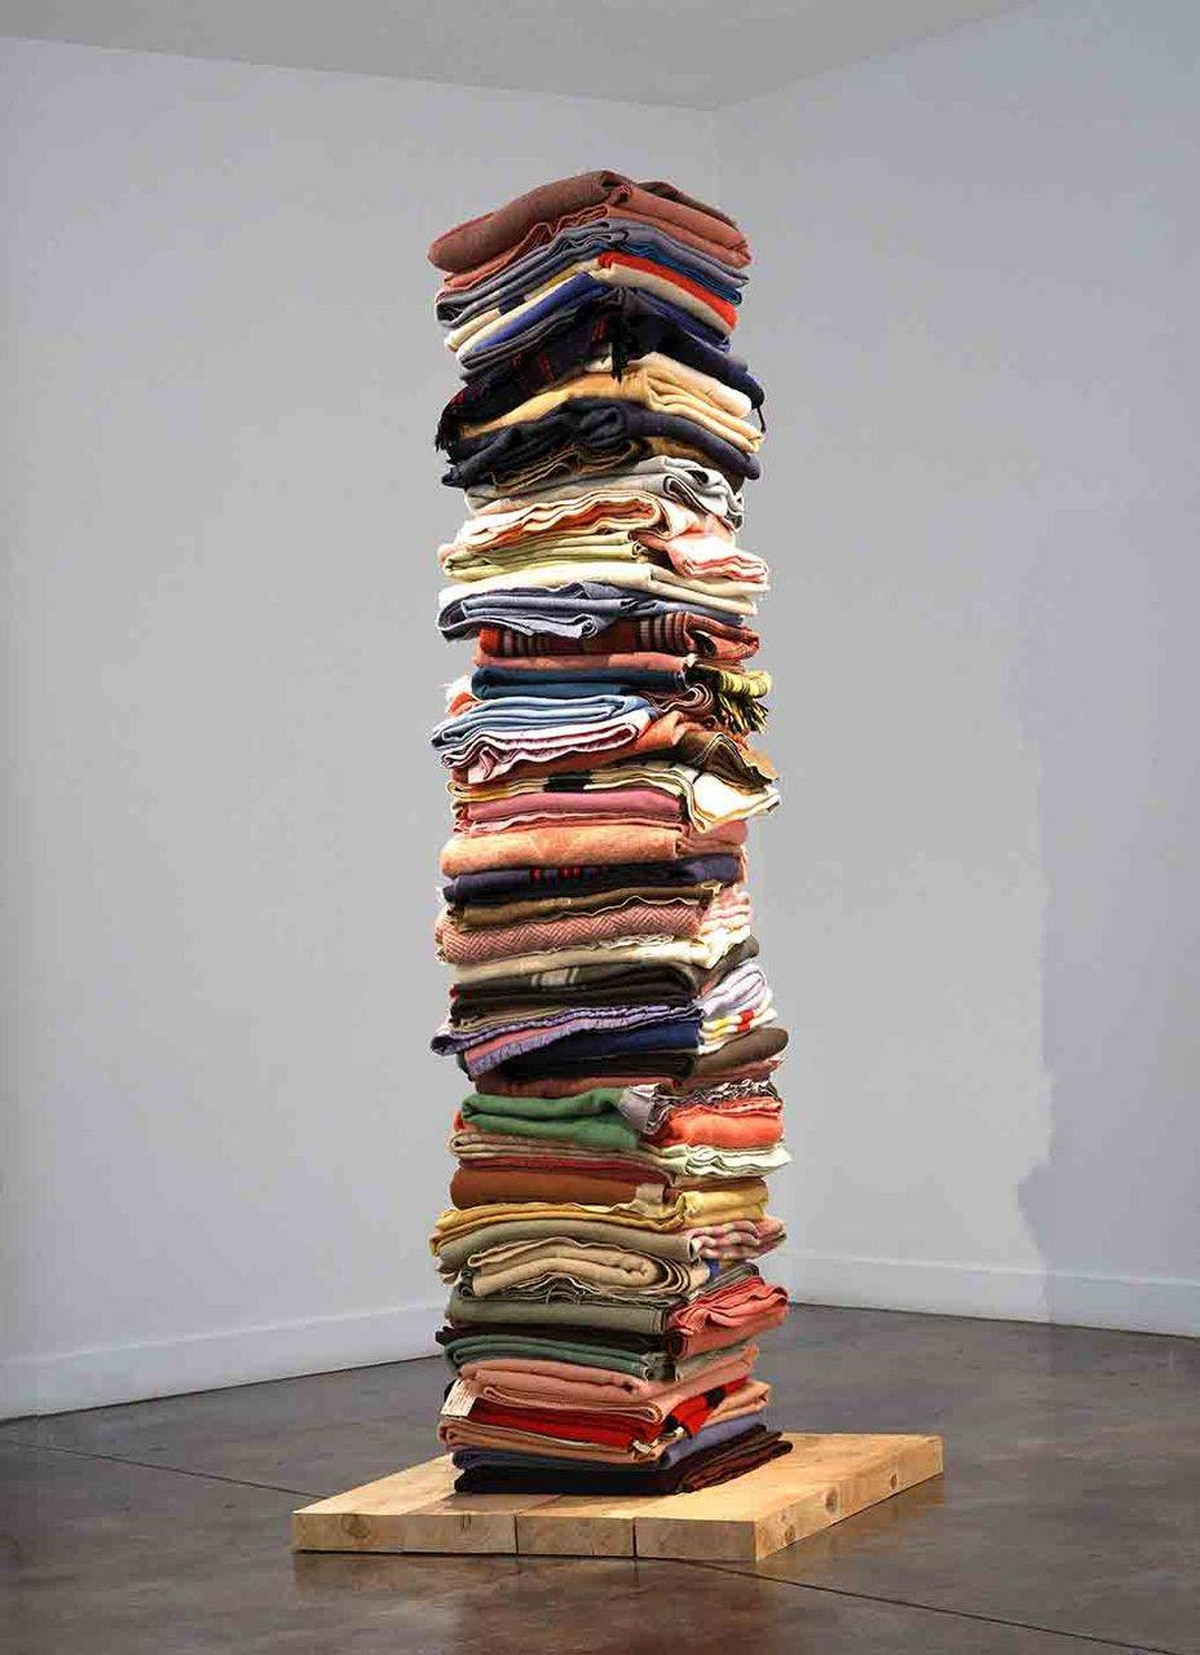 Marie Watt, Blanket Stories: Seven Generations, Adawe, and Hearth (detail), 2013. Folded and stacked blankets, paper tags, Site